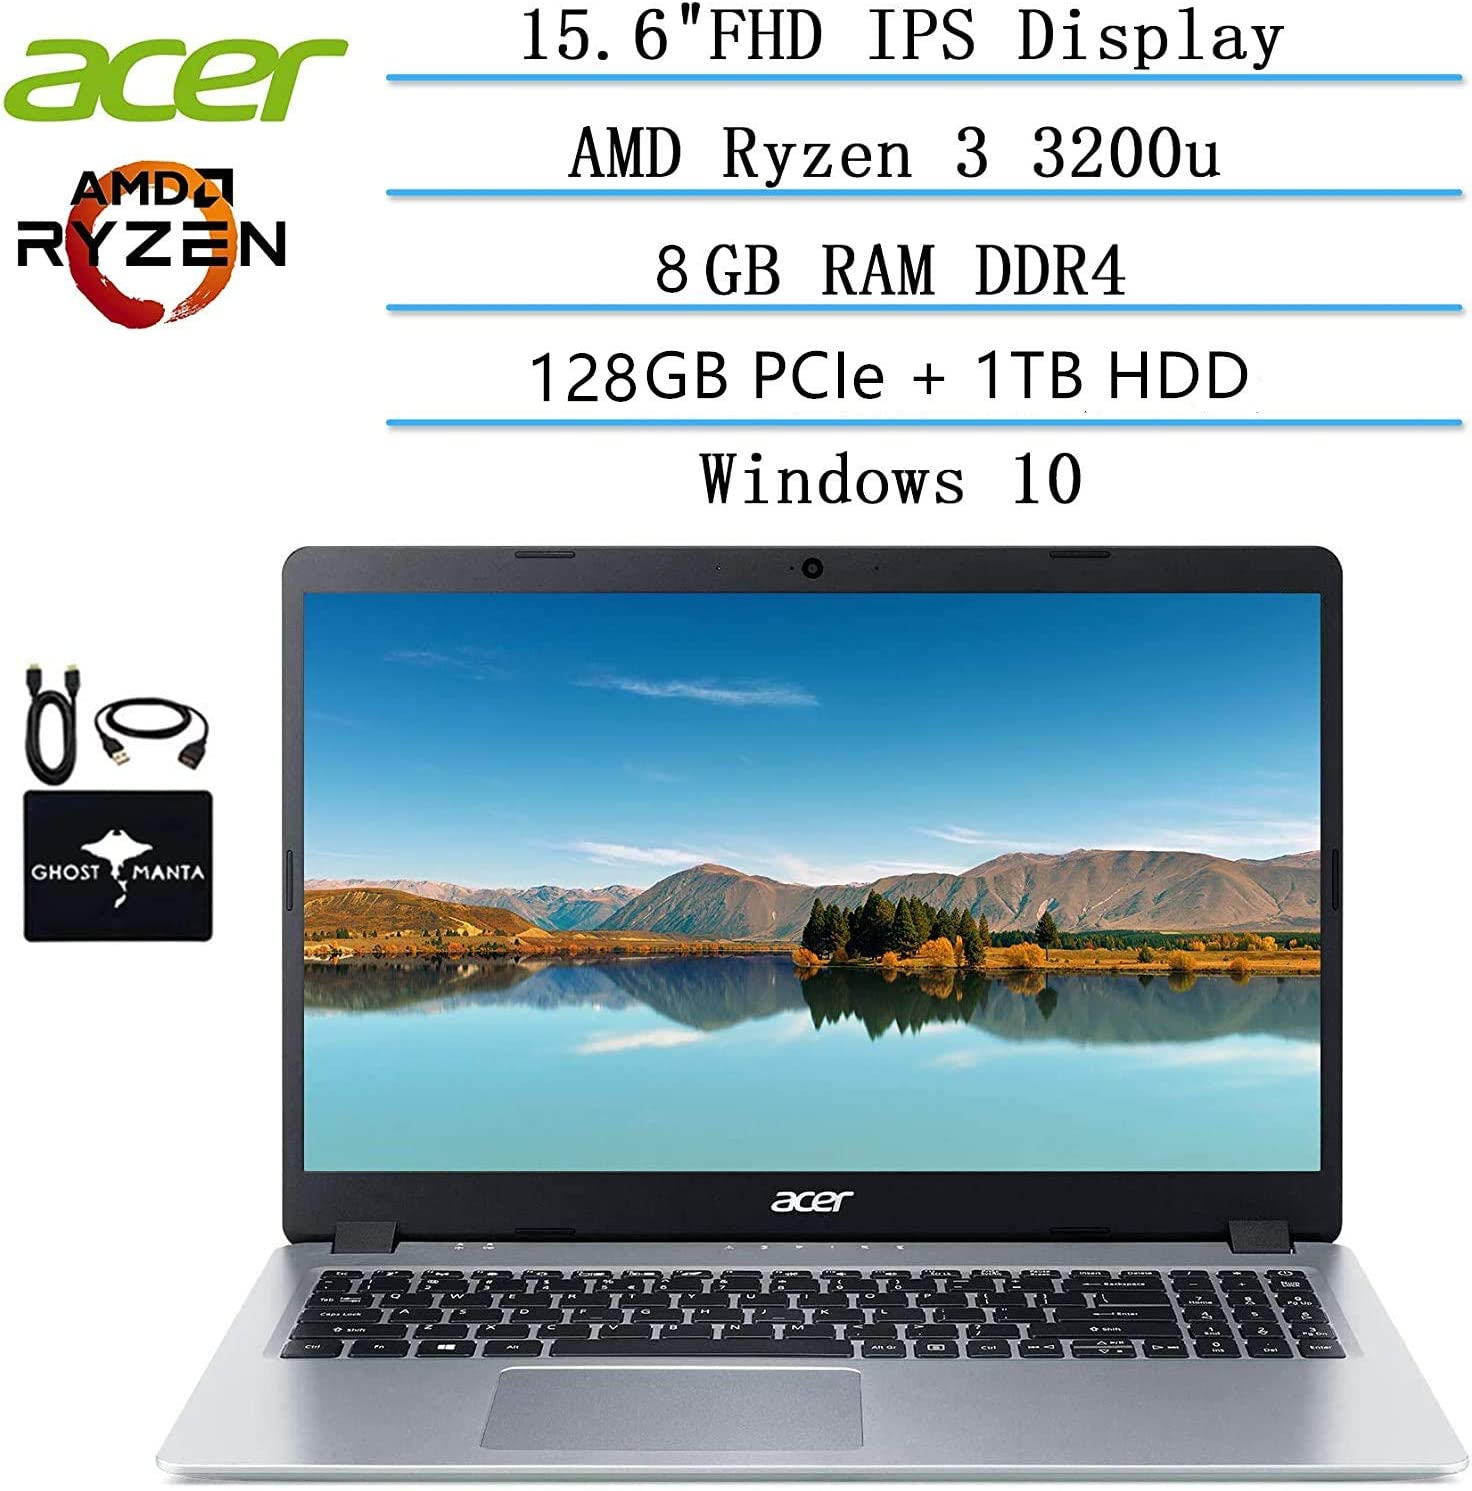 2020 Newest Acer Aspire 5 Slim Laptop 15.6 FHD IPS Display, AMD Ryzen 3 3200u-Dual Core (up to 3.5GHz), Vega 3 Graphics, 8GB RAM, 128GB PCIe SSD + 1TB HDD, Win10 w/Ghost Manta Accessories